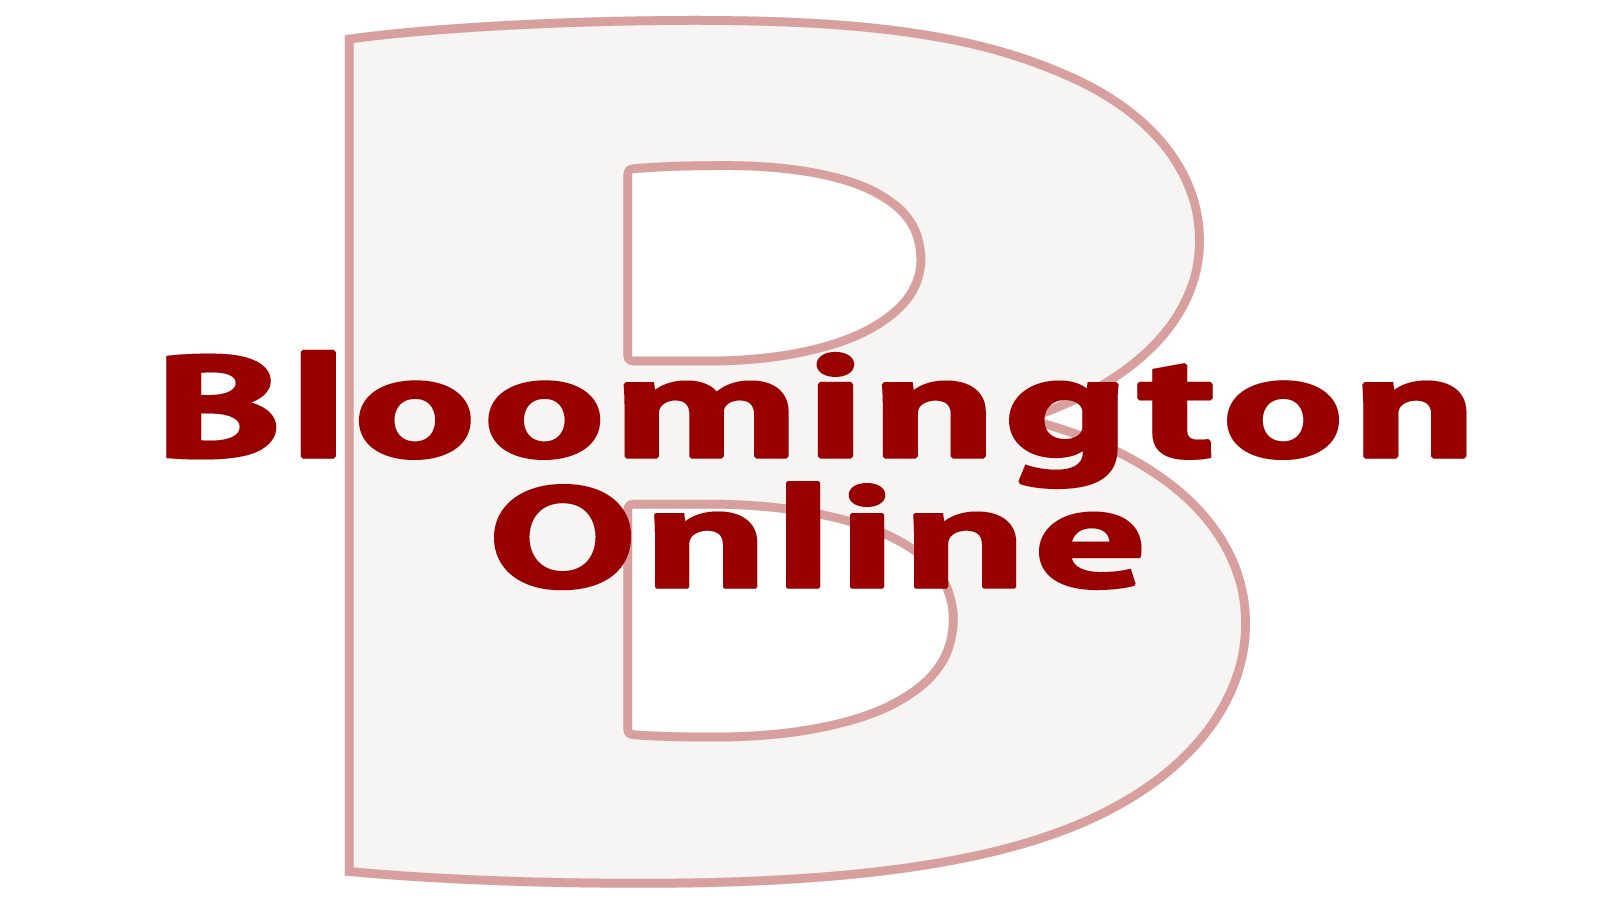 BloomingtonOnline